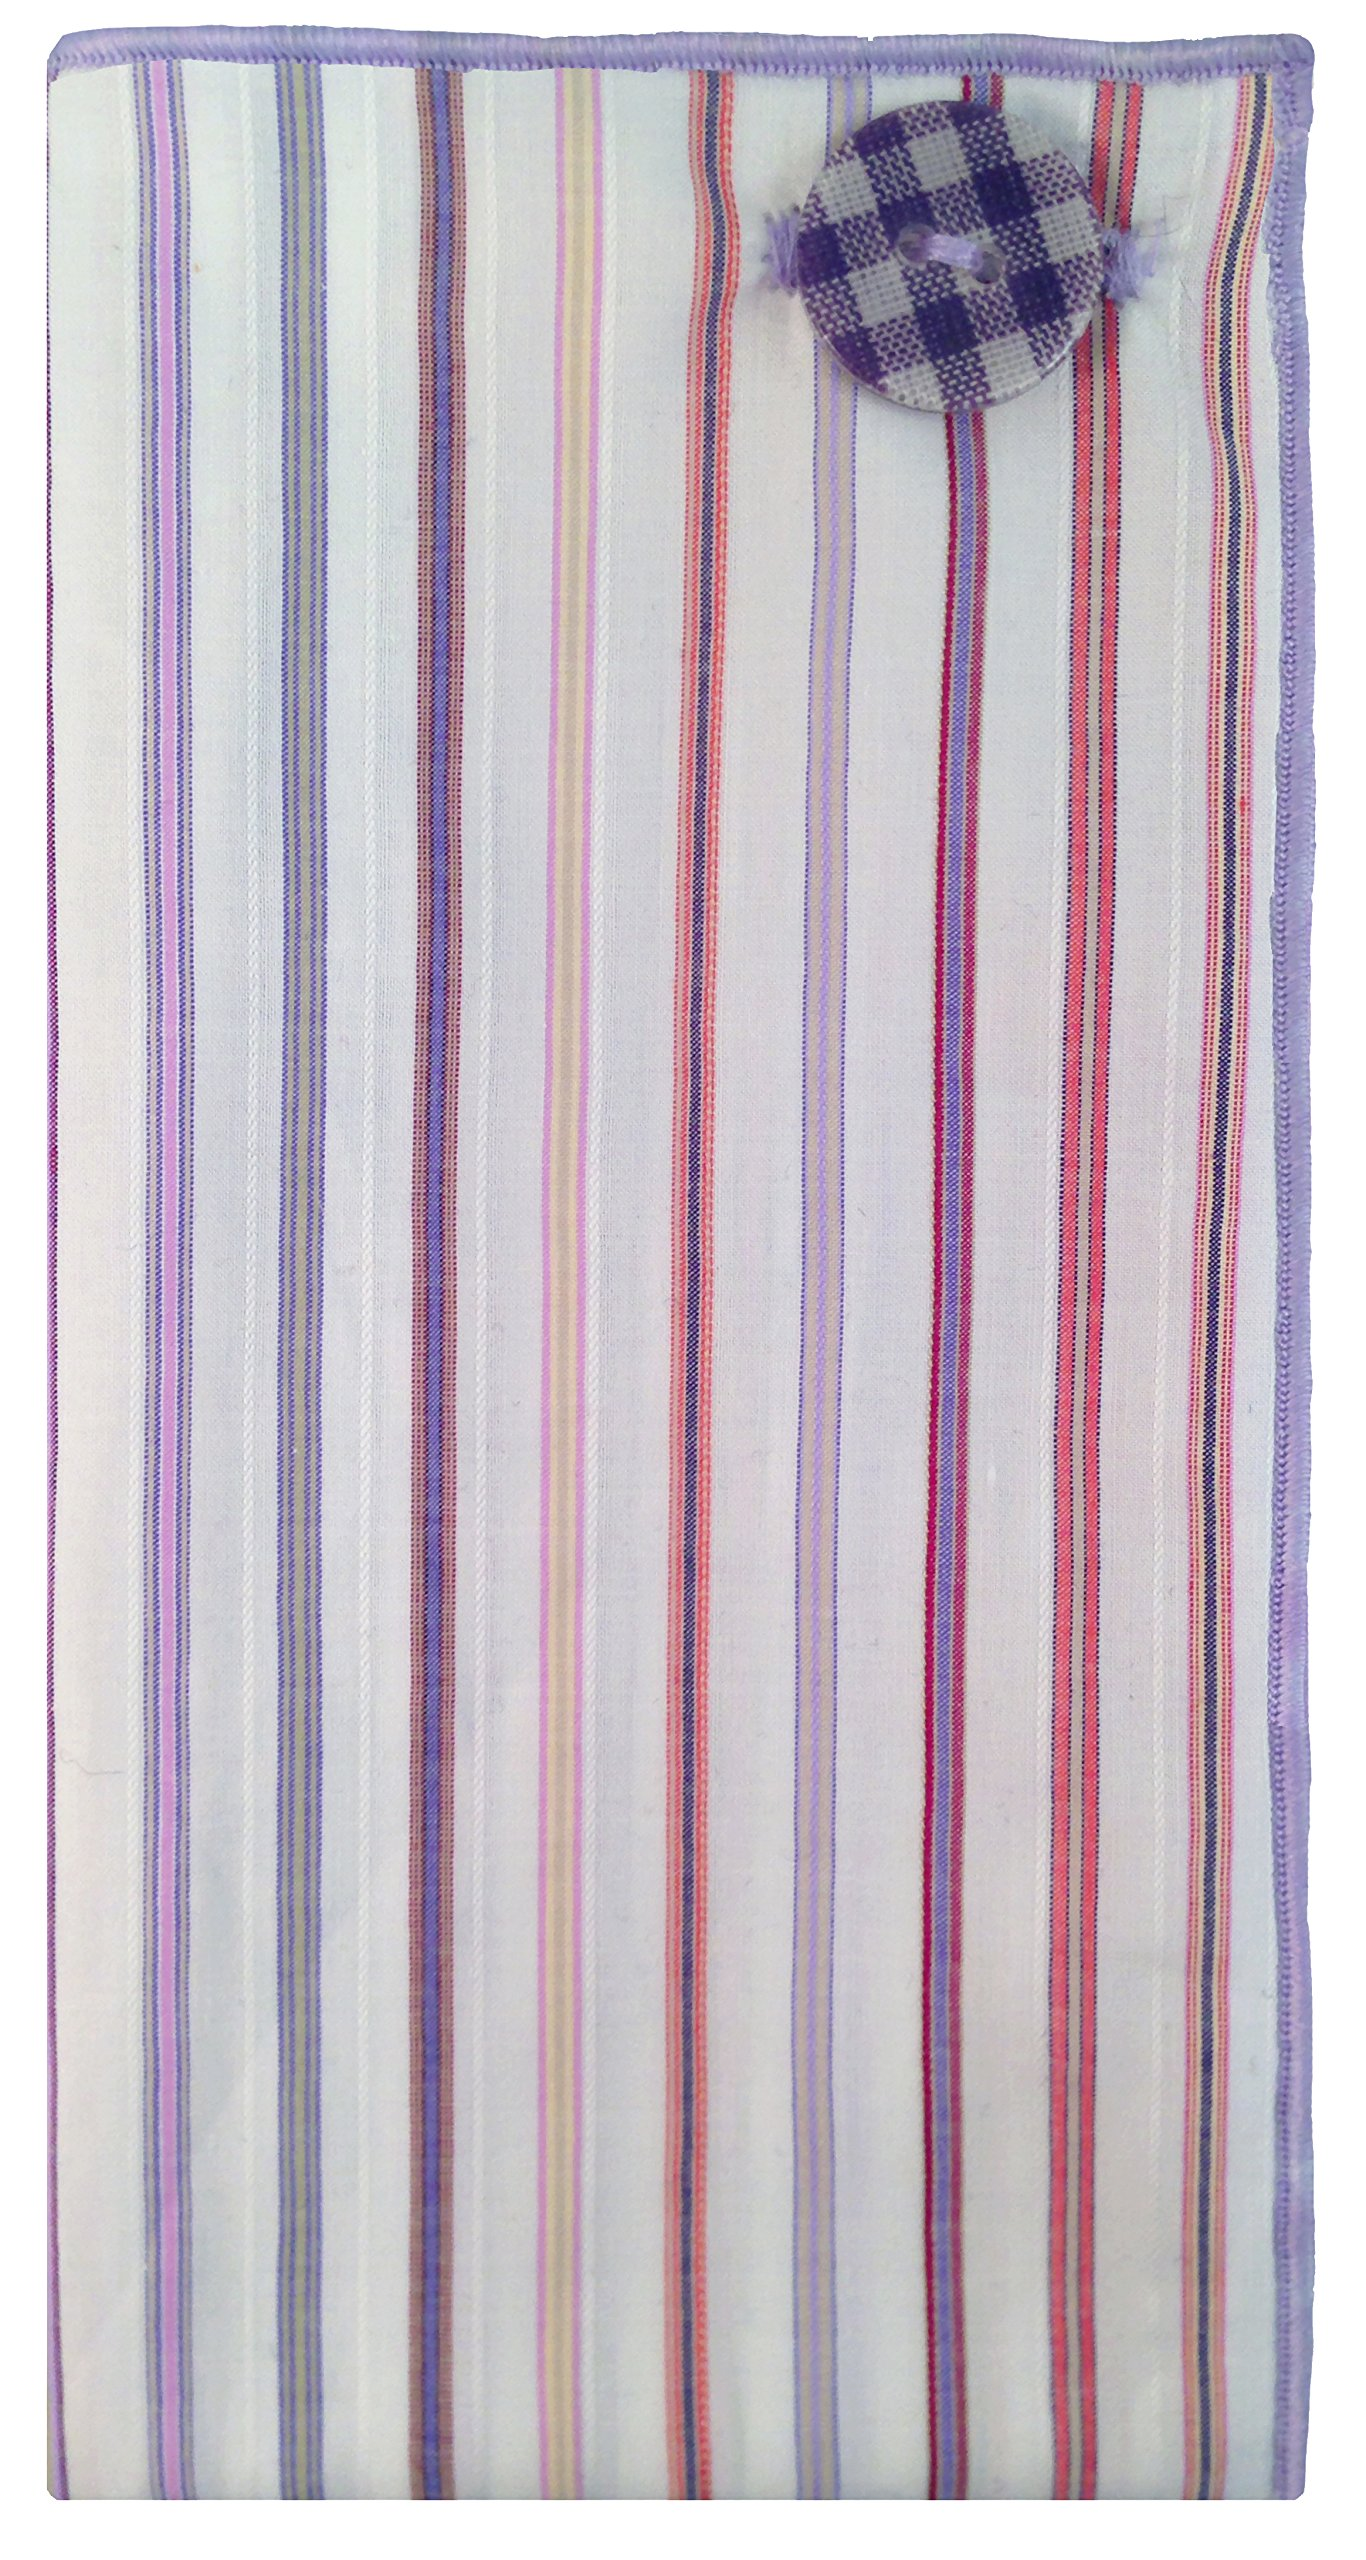 White & Multi Stripe w/Gingham Button Men's Pocket Square by The Detailed Male by The Detailed Male (Image #2)